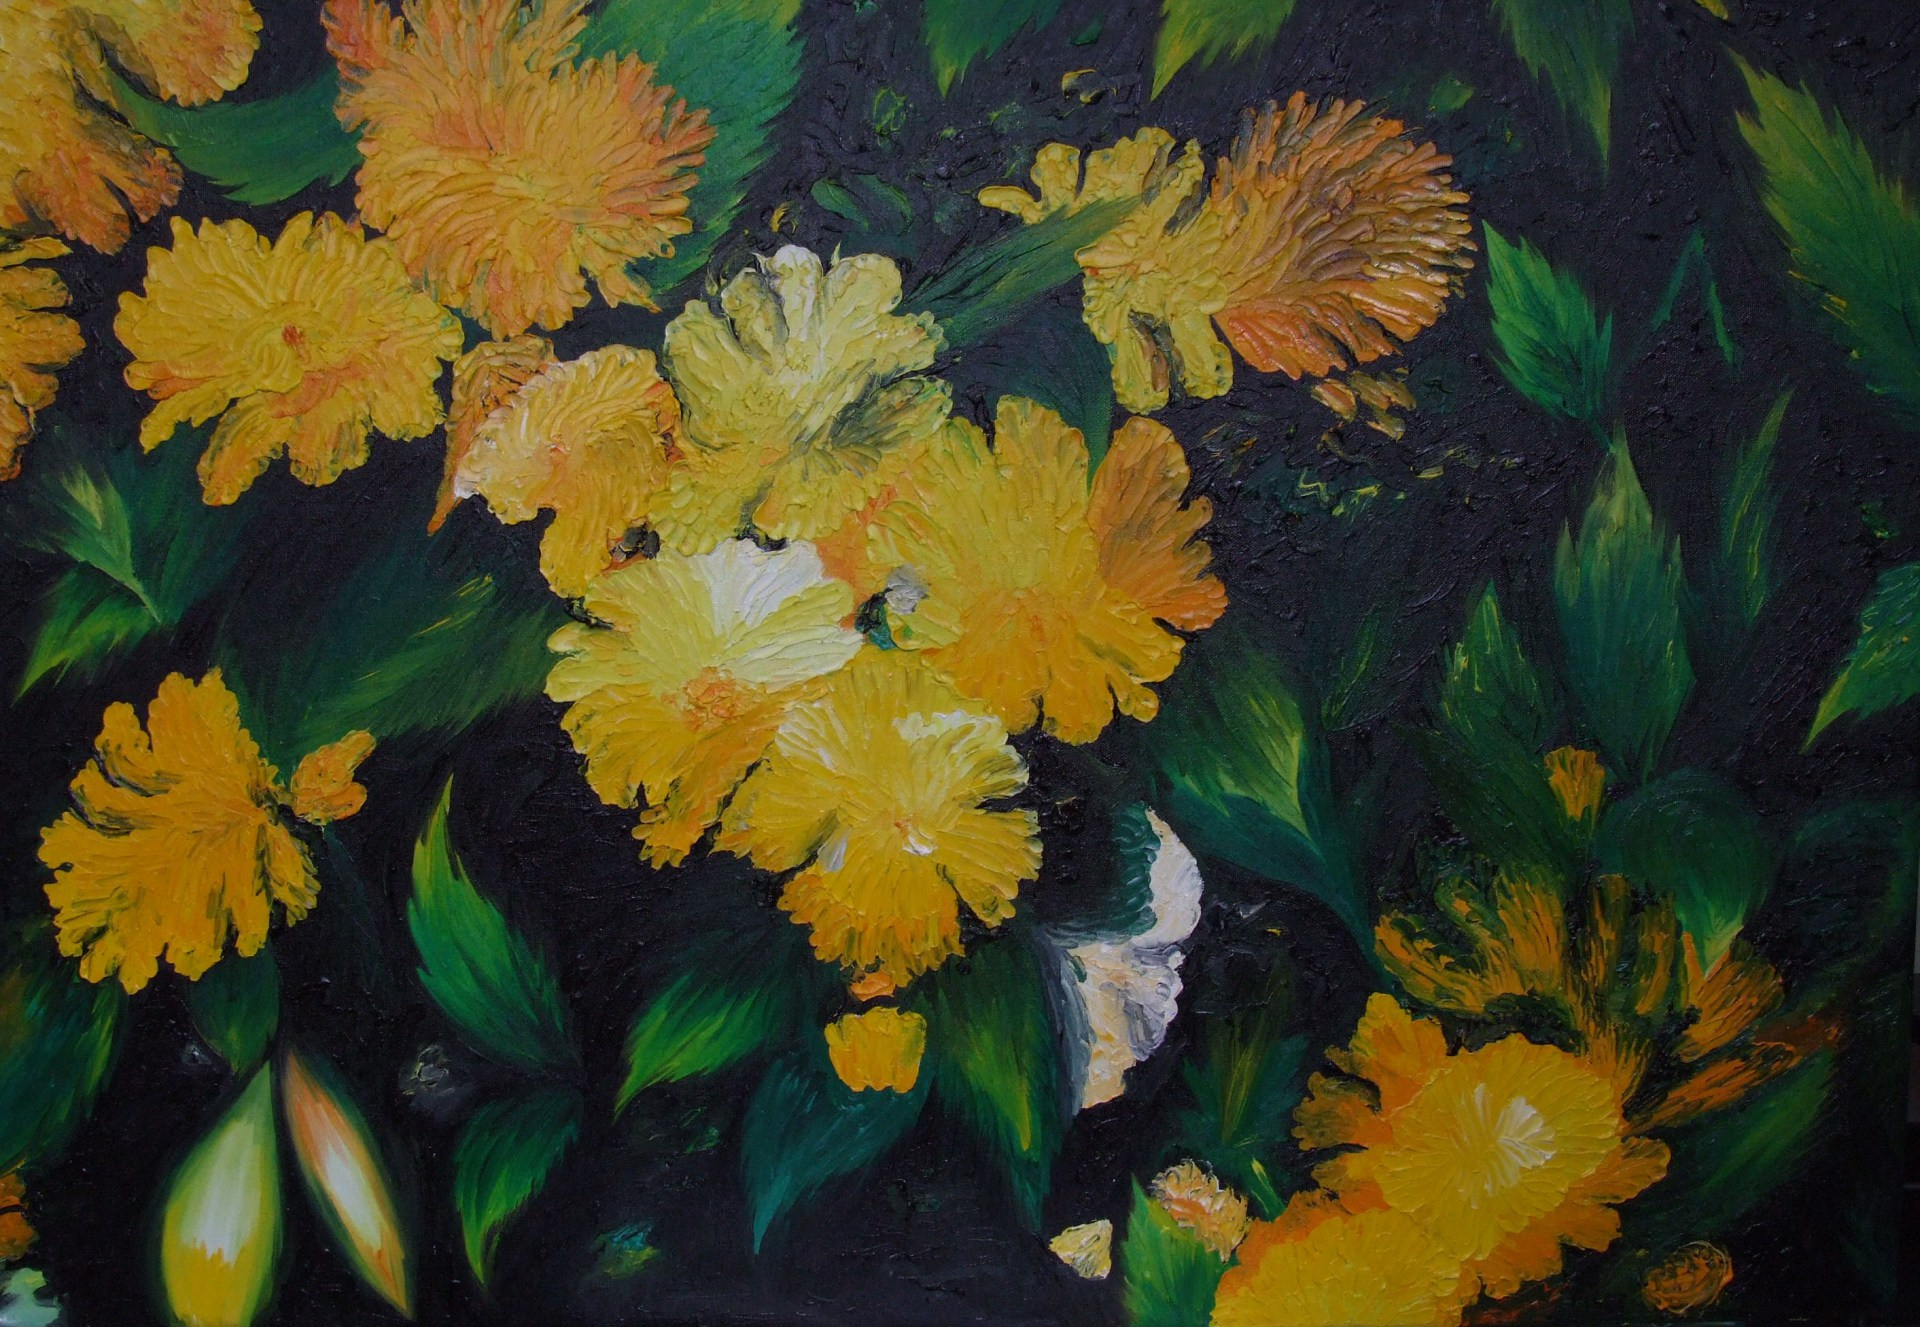 Yellow Flower 91x61cm - oil on canvas